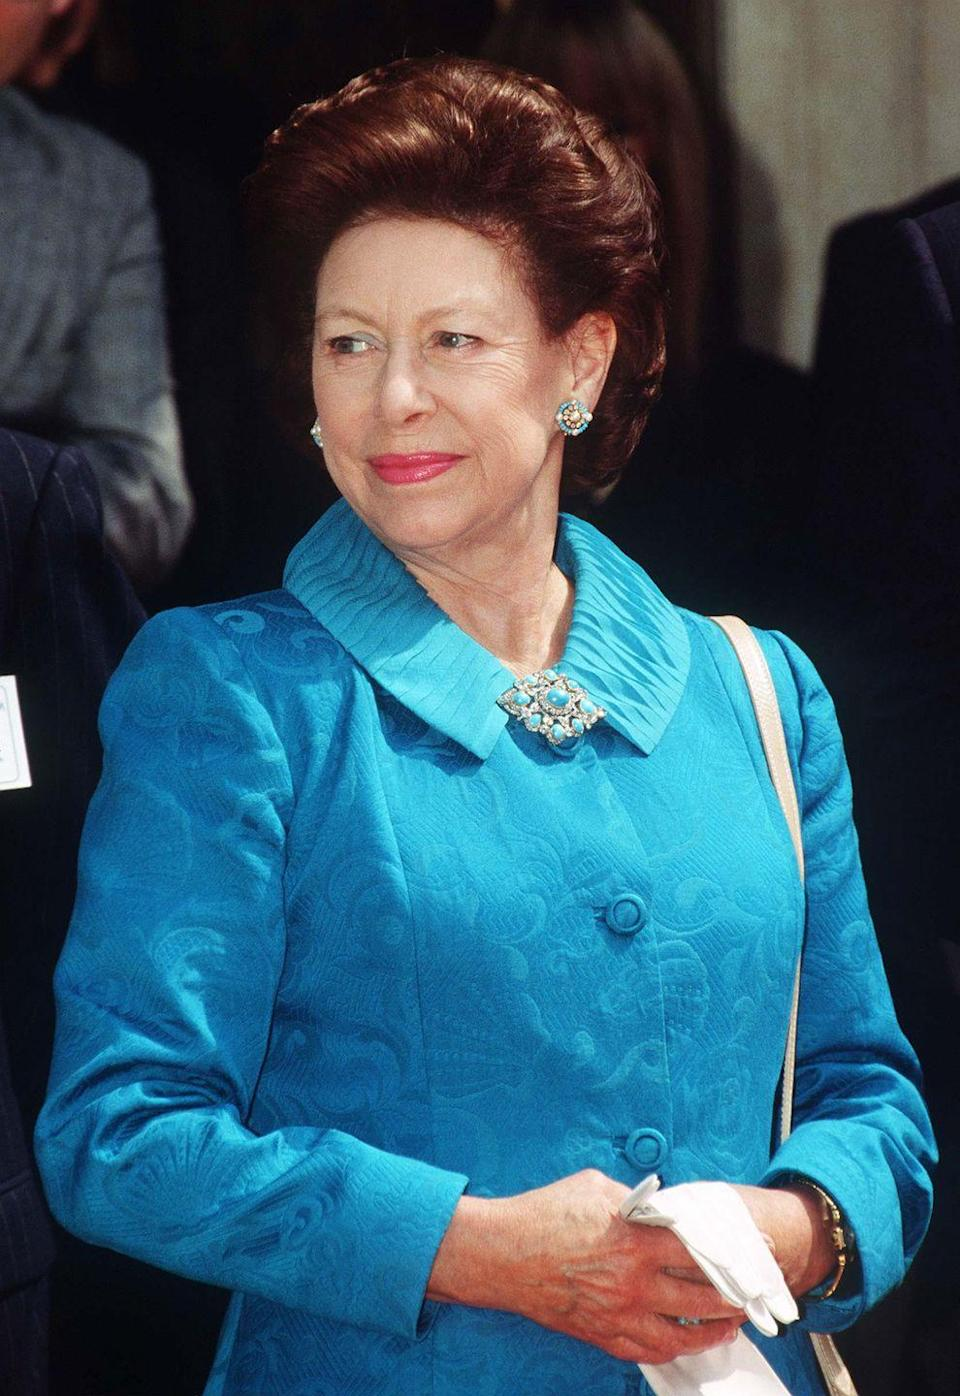 "<p>Princess Margaret is pictured at the unveiling of the <a href=""https://www.nspcc.org.uk/keeping-children-safe/our-services/childrens-services/"" rel=""nofollow noopener"" target=""_blank"" data-ylk=""slk:bronze Allies sculpture in London"" class=""link rapid-noclick-resp"">bronze Allies sculpture in London</a>, celebrating 50 years of peace and highlighting the relationship between British Prime Minister Winston Churchill and US President Franklin Roosevelt. </p>"